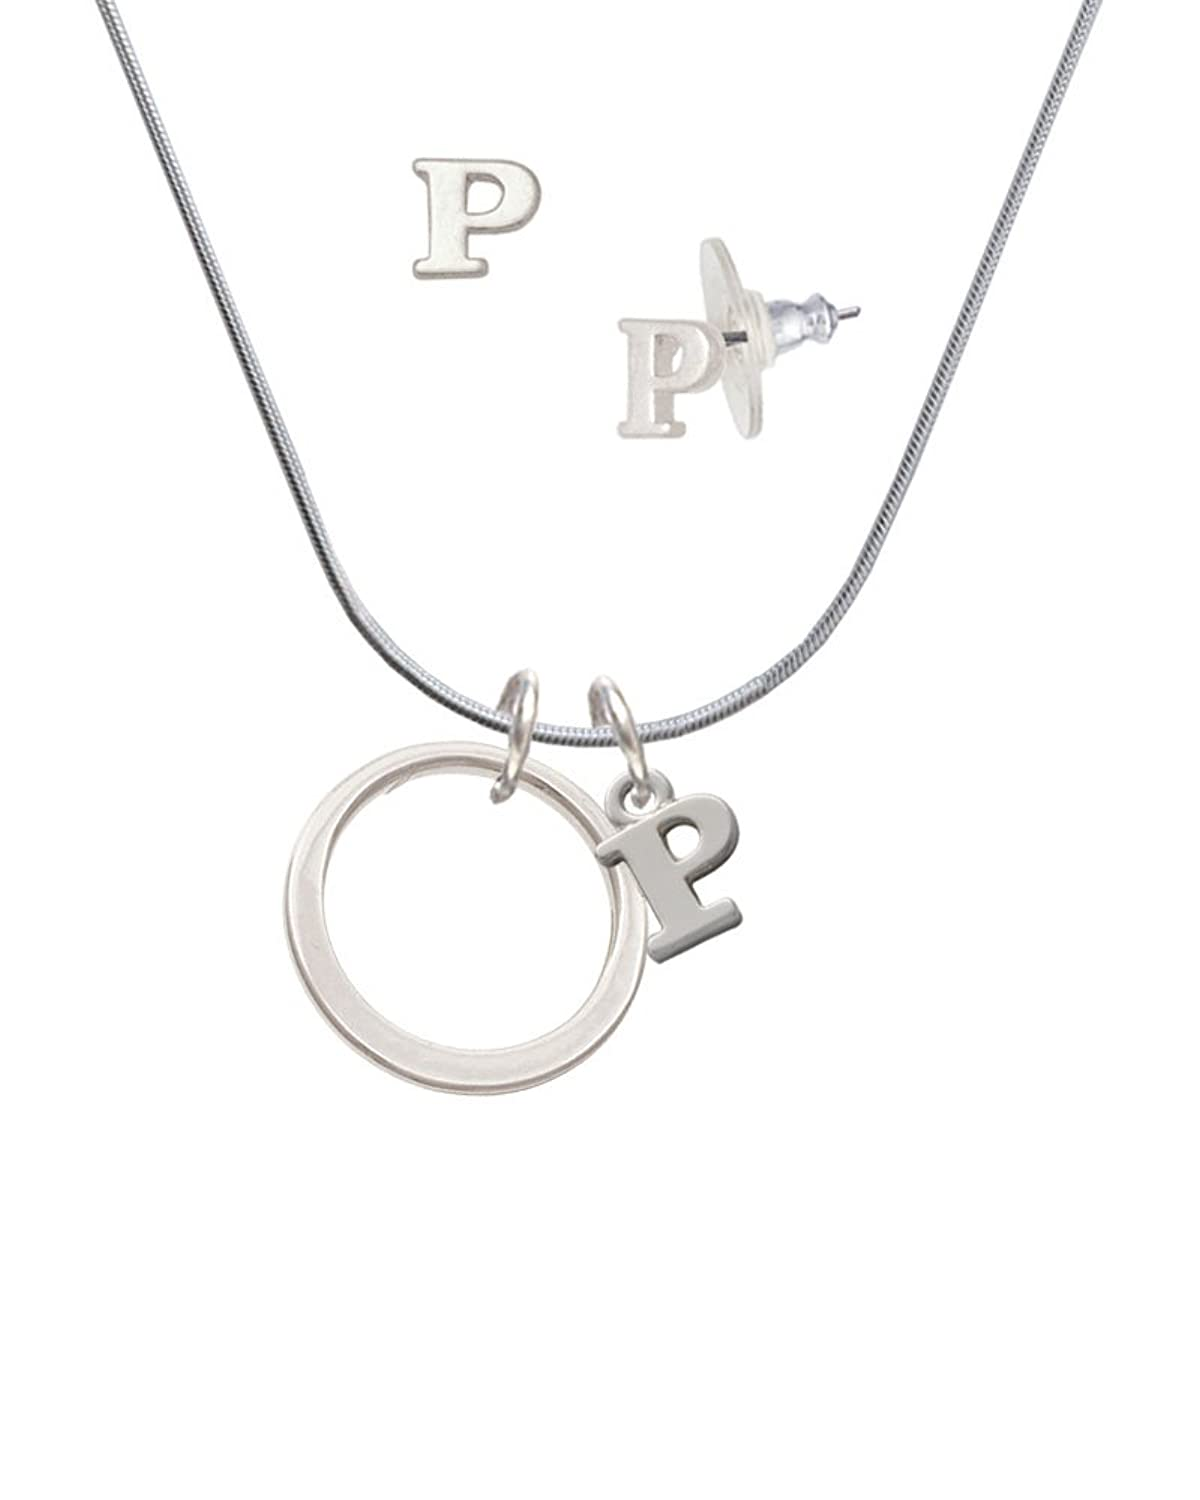 Large Karma Ring - P Initial Charm Necklace and Stud Earrings Jewelry Set